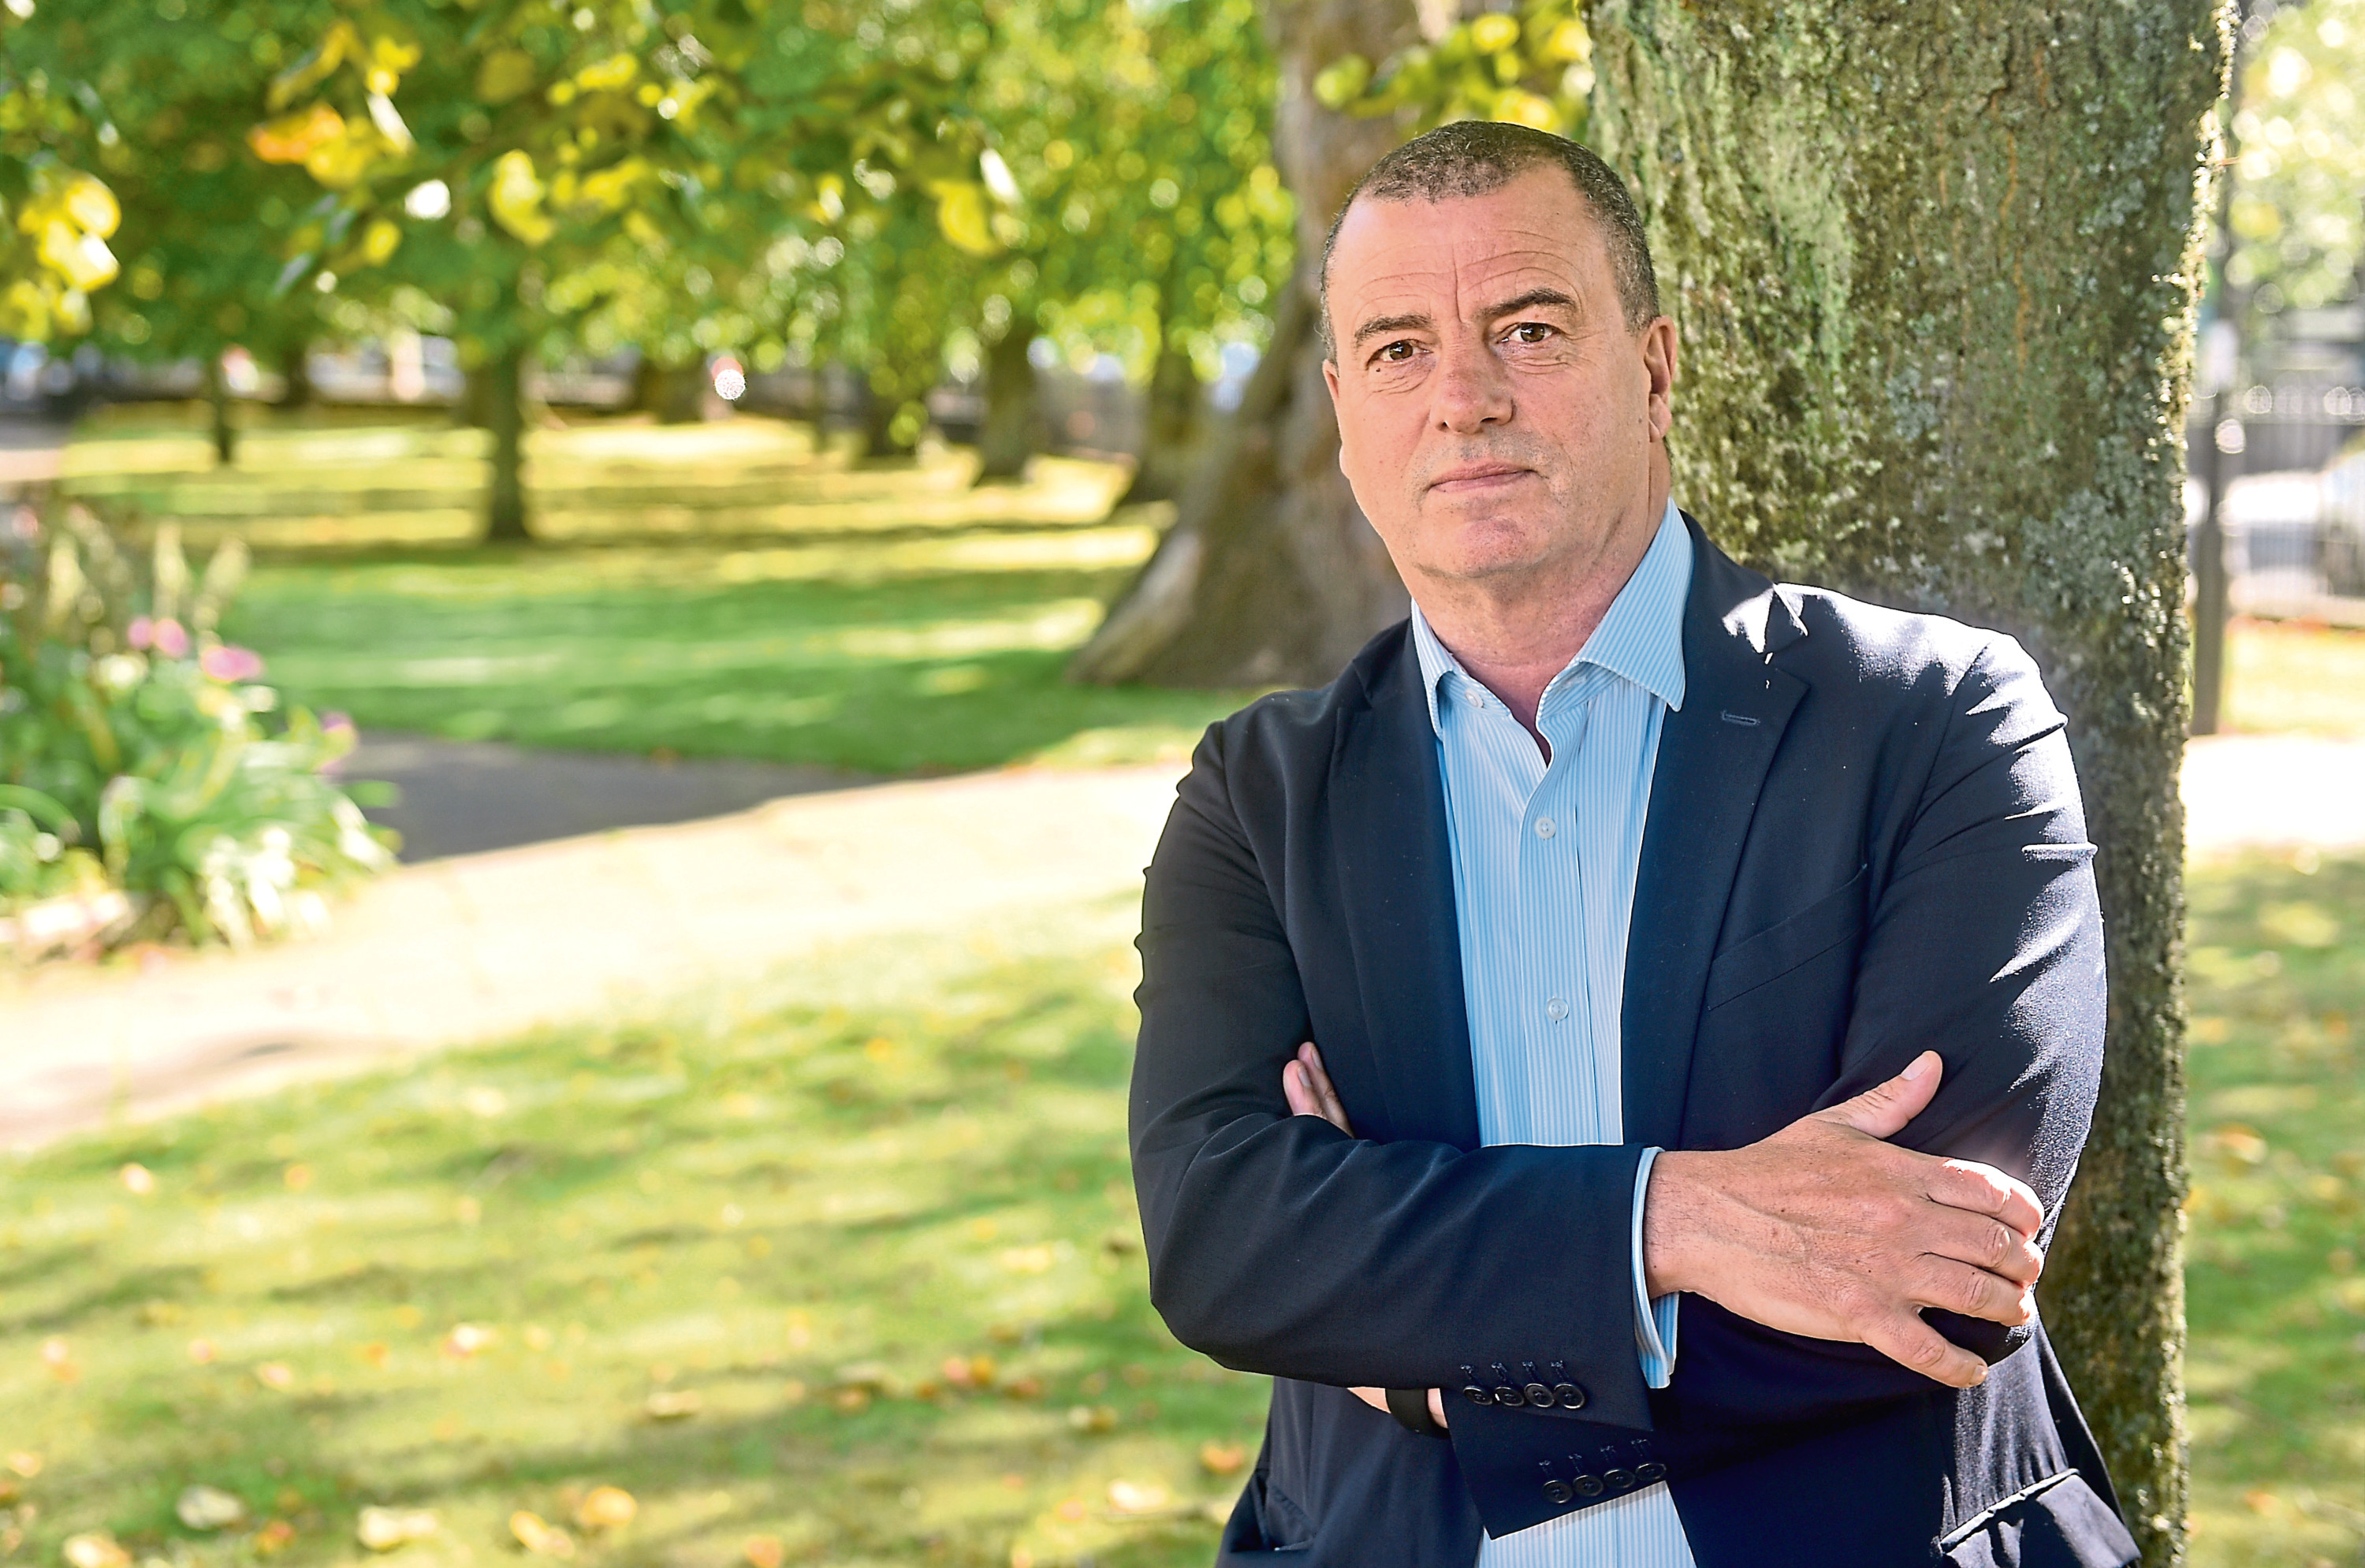 Pictured is Scottish Enterprise Chief Executive Steve Dunlop in Queen's Terrace Gardens, Aberdeen Picture by DARRELL BENNS     Pictured on 19/09/2019 CR0014300